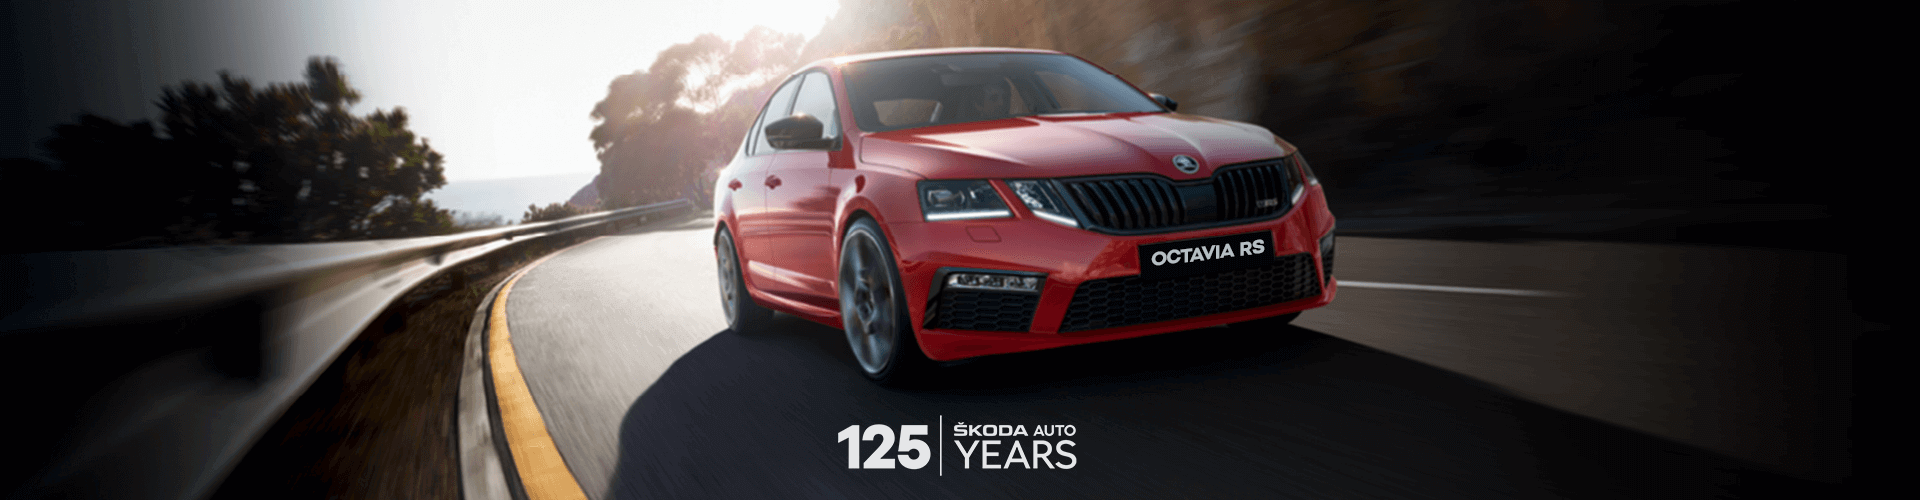 Octavia-RS-245 less price